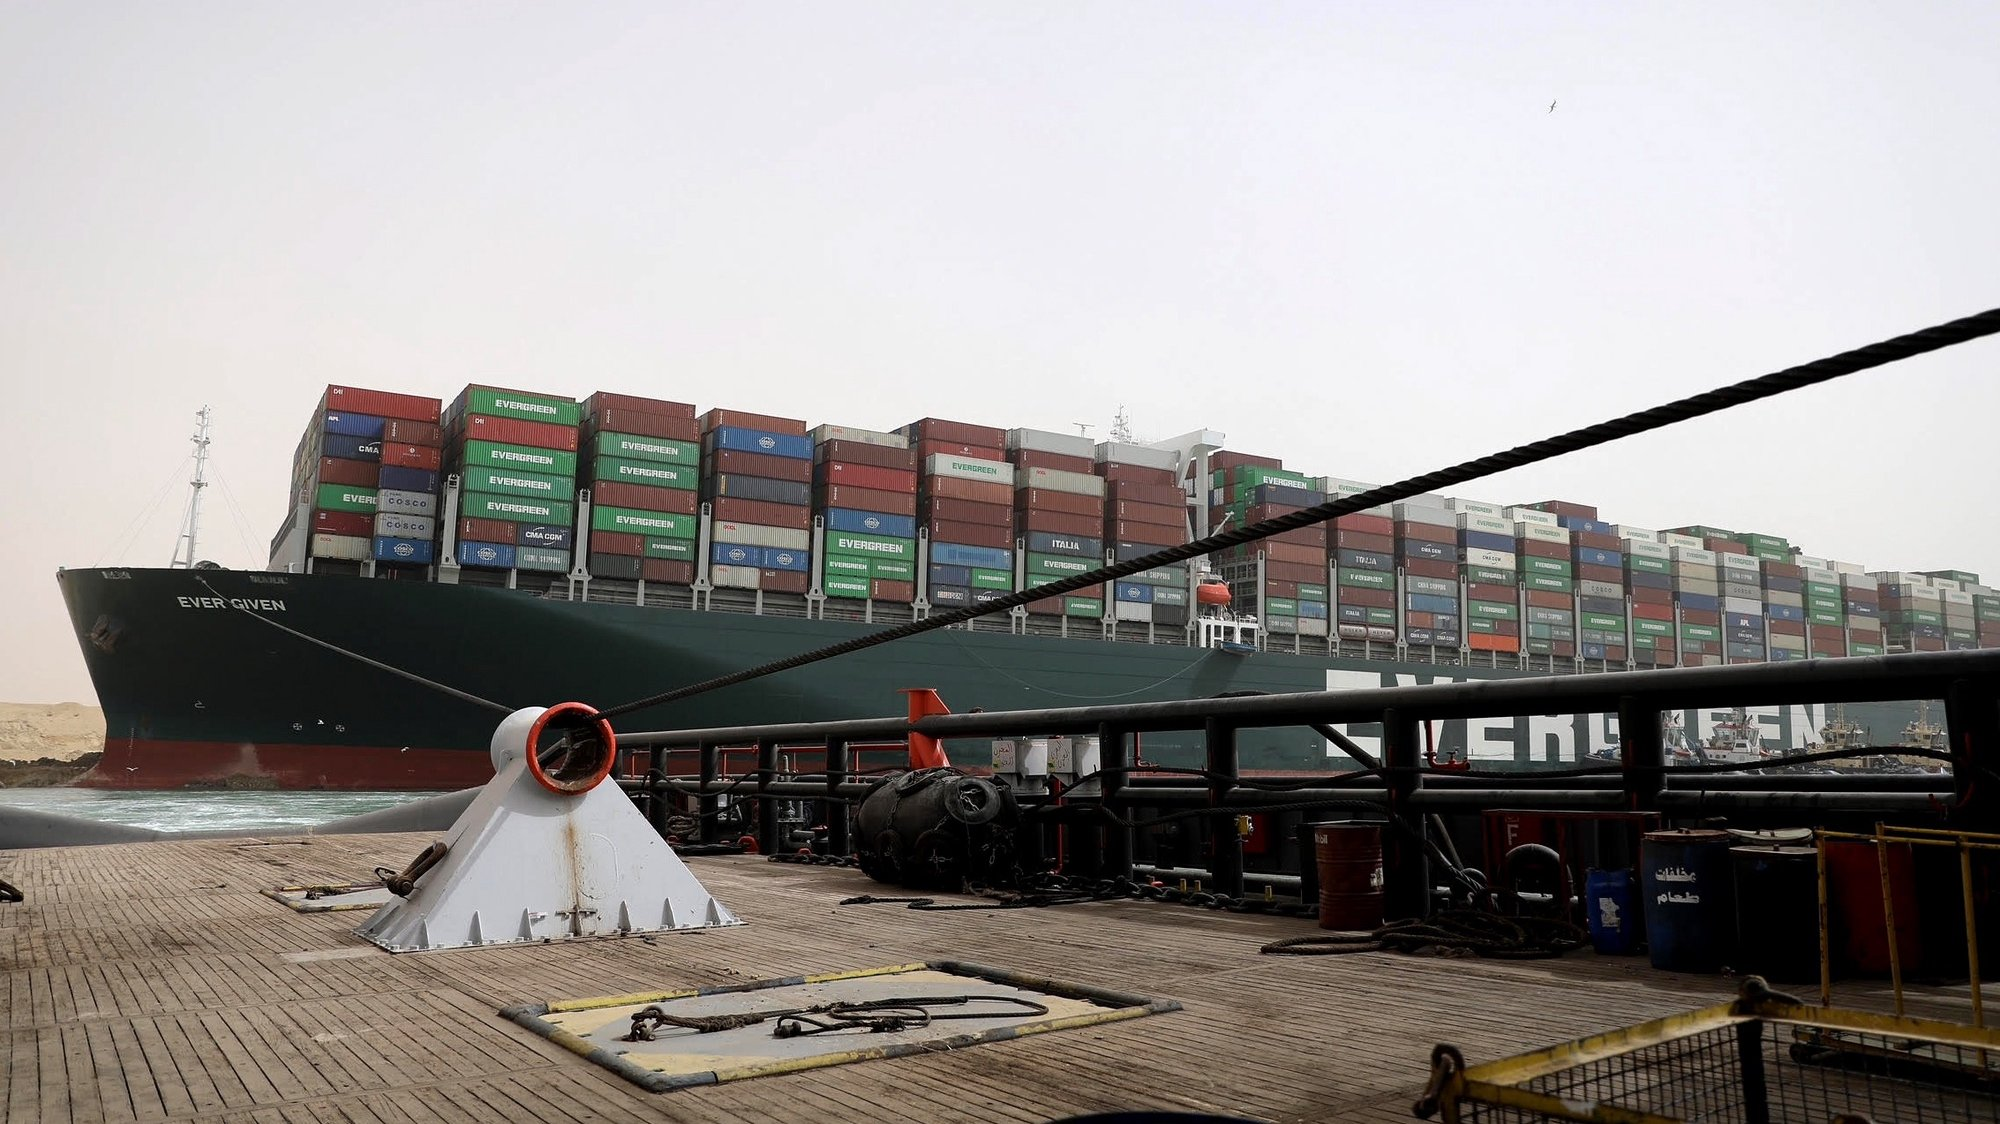 """epa09095658 A handout photo made available by the Suez Canal Authority, shows ropes  from an Egyptian tugboat pulling the Ever Green container ship in the Suez Canal, Egypt, 25 March 2021. The Ever Given, a large container ship ran aground in the Suez Canal on 23 March, blocking passage of other ships and causing a traffic jam for cargo vessels.  The head of the Suez Canal Authority announced on 25 March that """"the navigation through the Suez Canal is  temporarily suspended"""" until the floatation of  the Ever Given is completeted. Its floatation is being carried out by 8 large tugboats that are towing and pushing the grounding vessel.  EPA/SSUEZ CANAL AUTHORITY/HANDOUT  HANDOUT EDITORIAL USE ONLY/NO SALES HANDOUT EDITORIAL USE ONLY/NO SALES"""